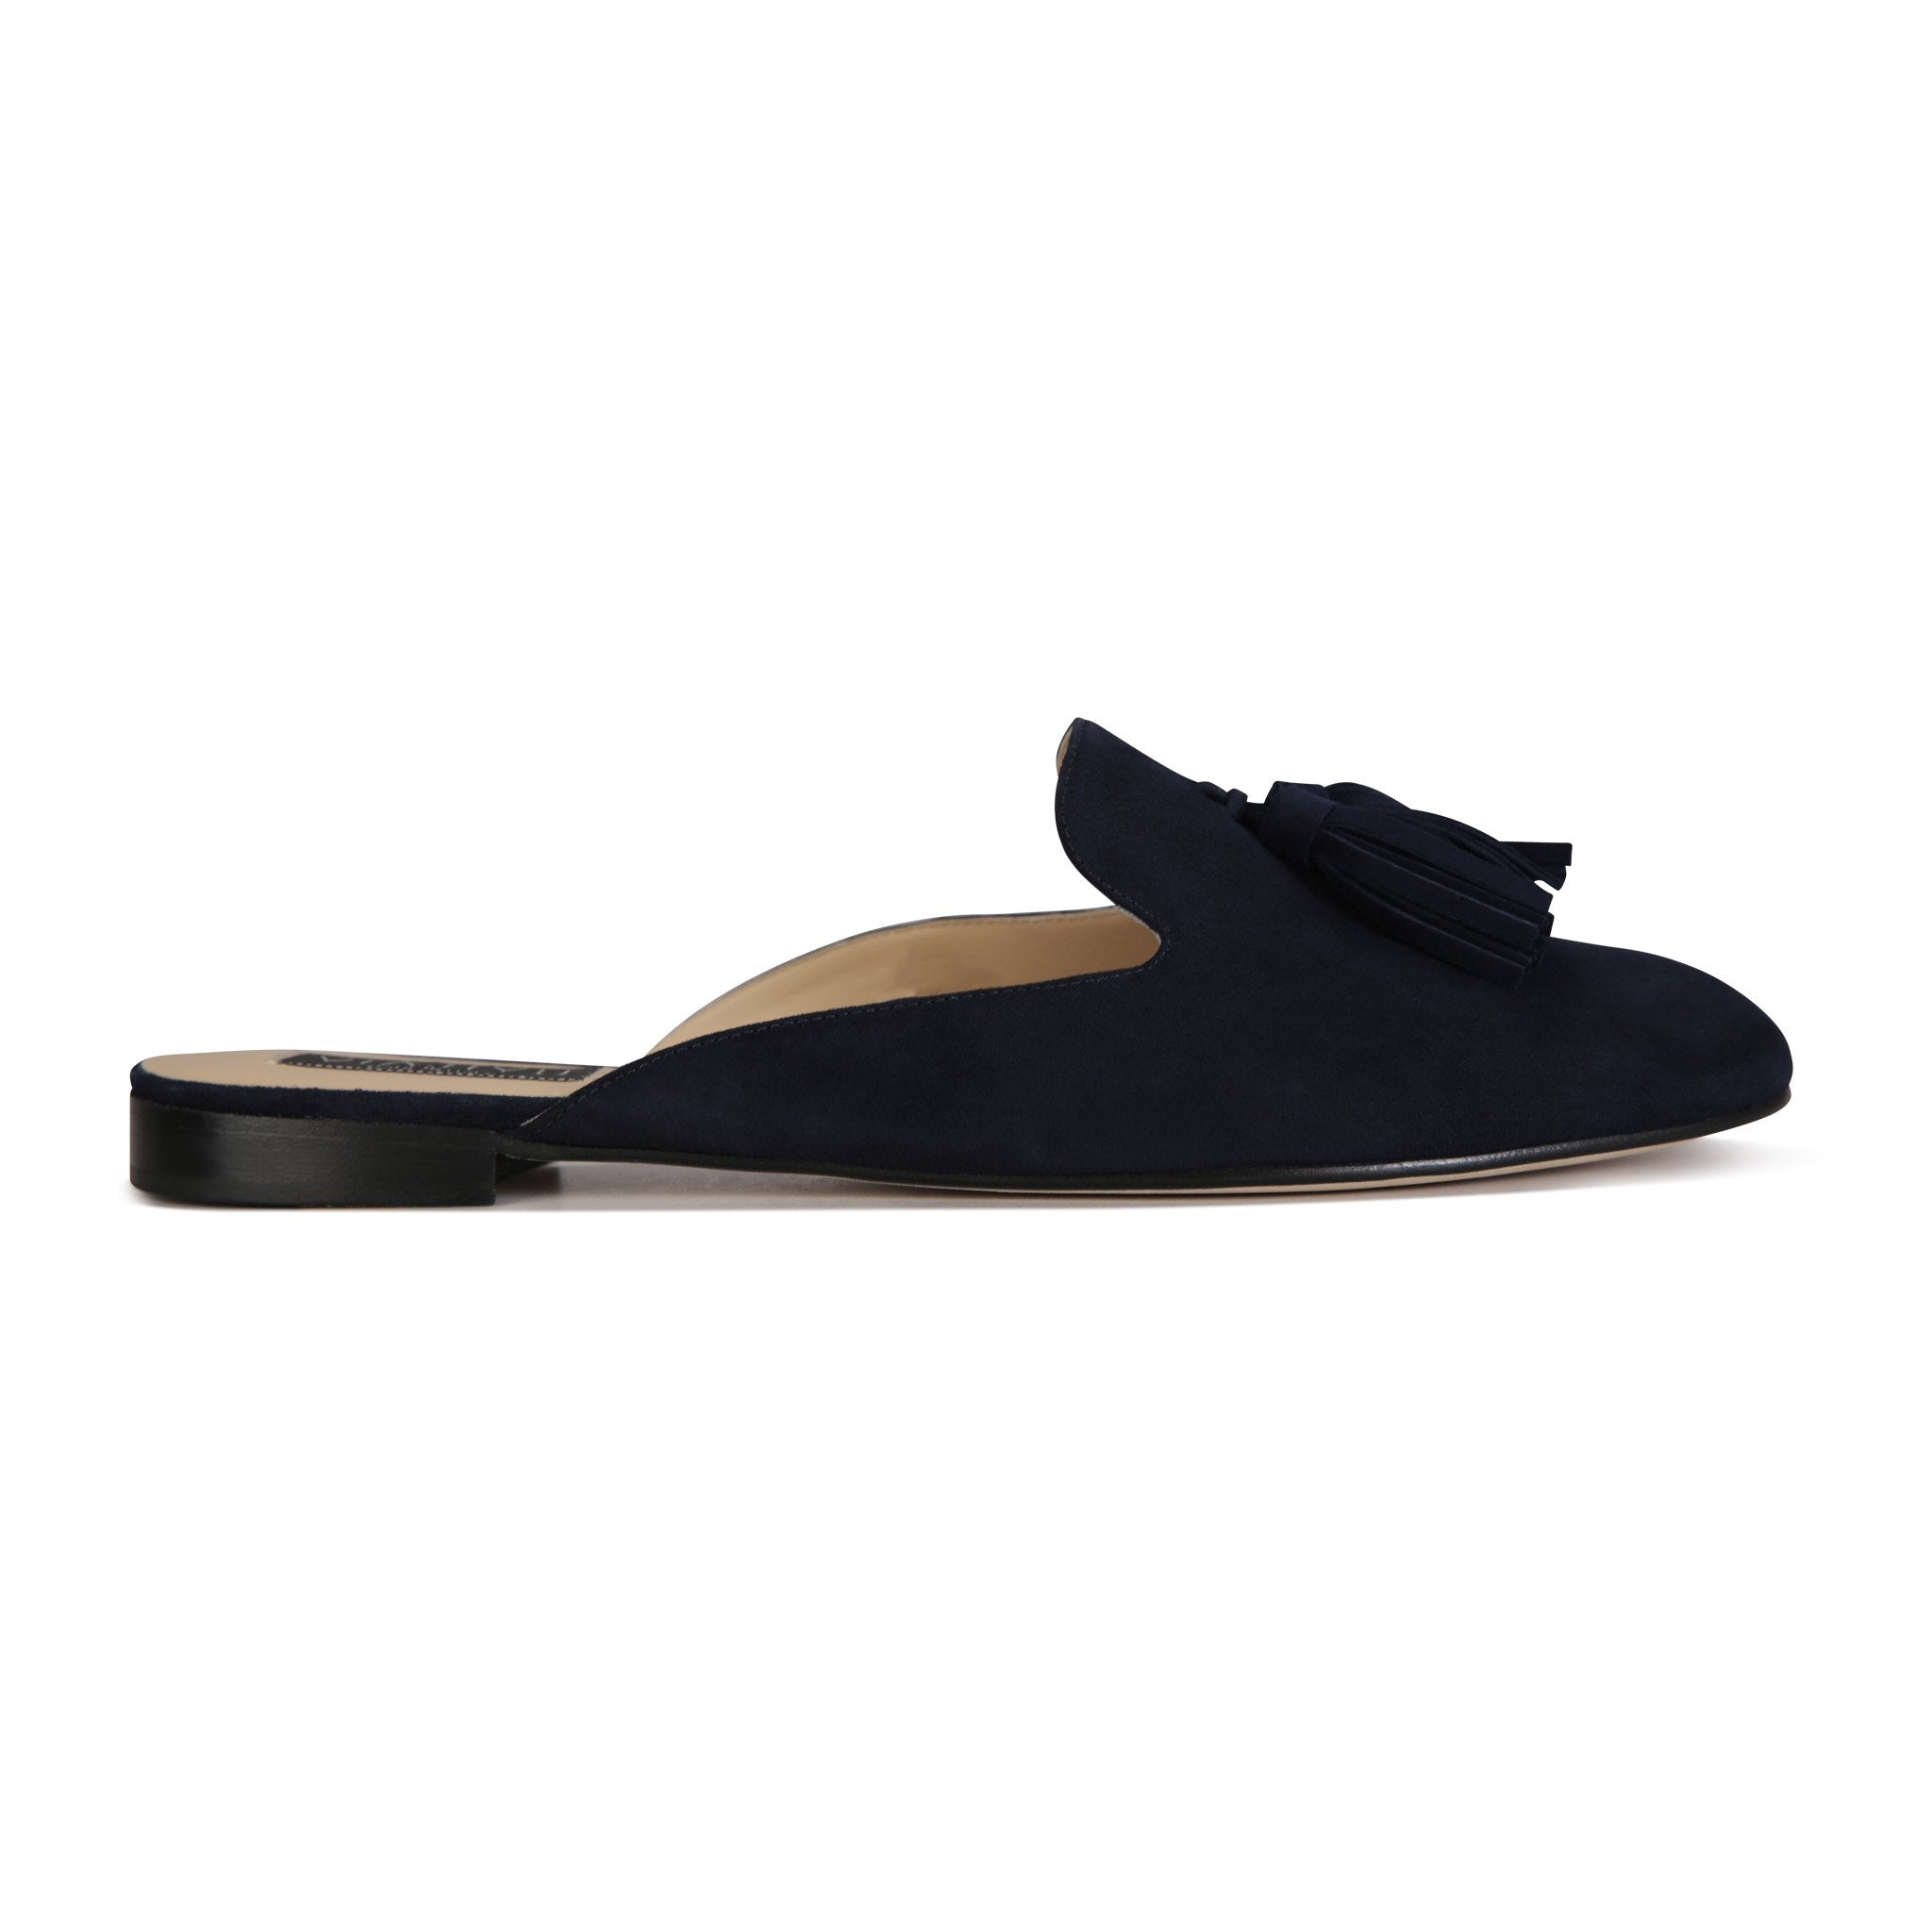 ISEO - Velukid Midnight + Tassel, VIAJIYU - Women's Hand Made Sustainable Luxury Shoes. Made in Italy. Made to Order.